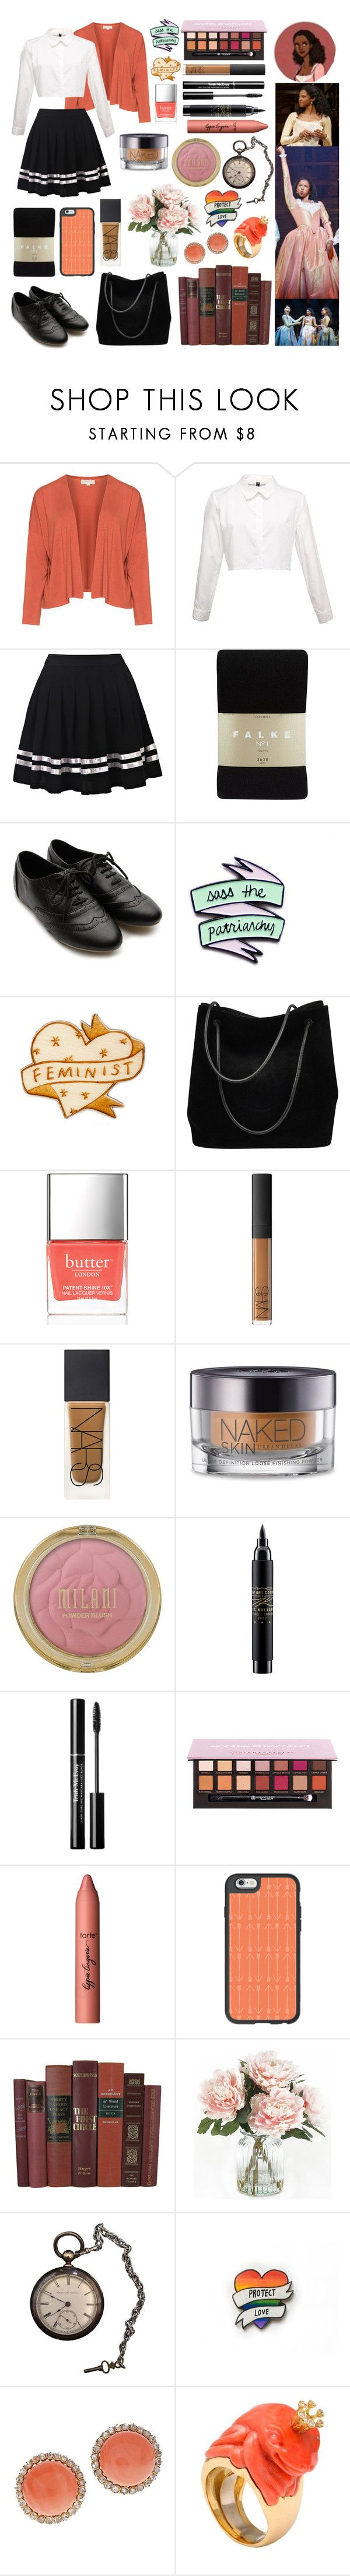 """Angelica Schuyler (Hamilton)"" by castiel-phantomhive ❤ liked on Polyvore featuring Isolde Roth, Falke, Ollio, Gucci, Butter London, NARS Cosmetics, Urban Decay, MAC Cosmetics, tarte and Casetify"